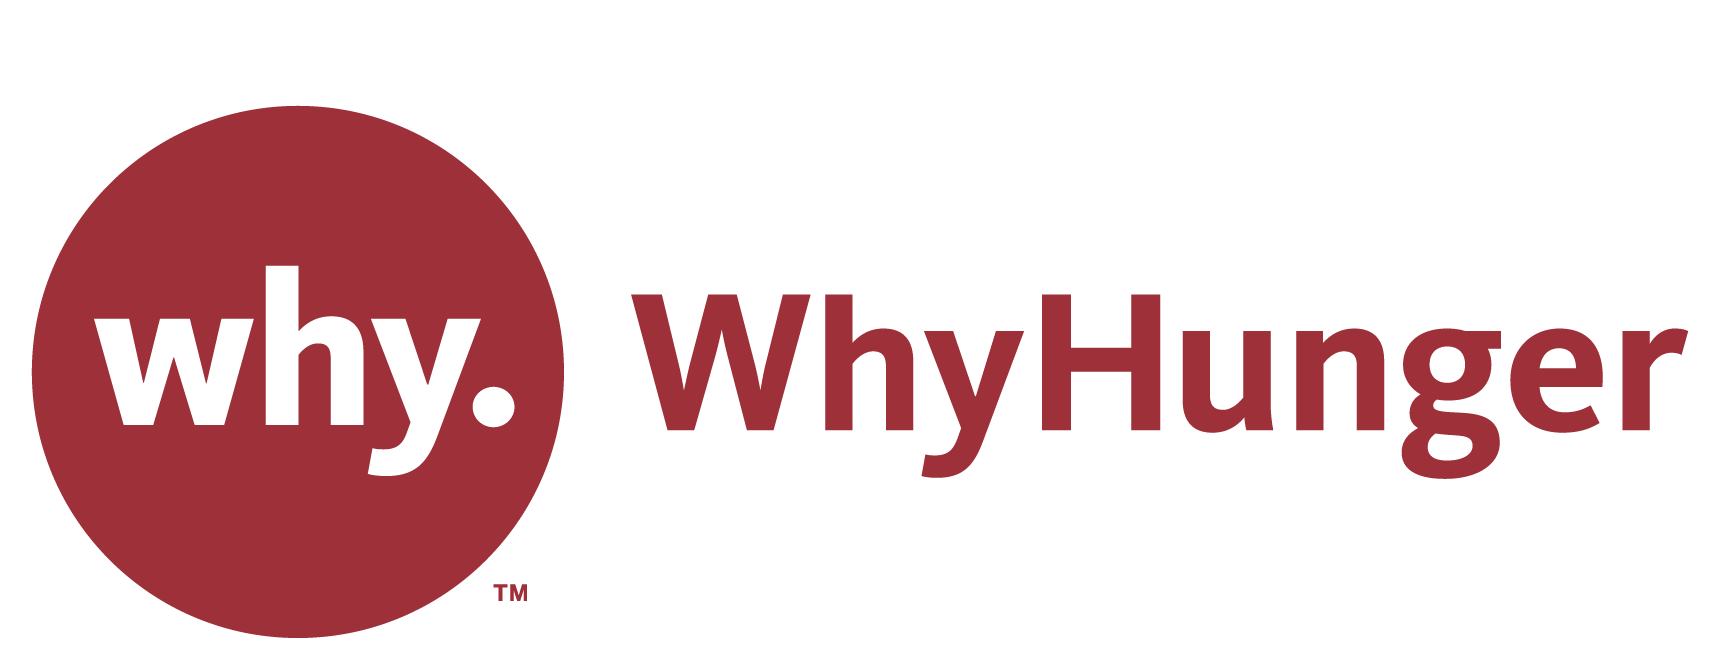 Join WhyHunger in Calling for Federal Action on COVID-19 Relief